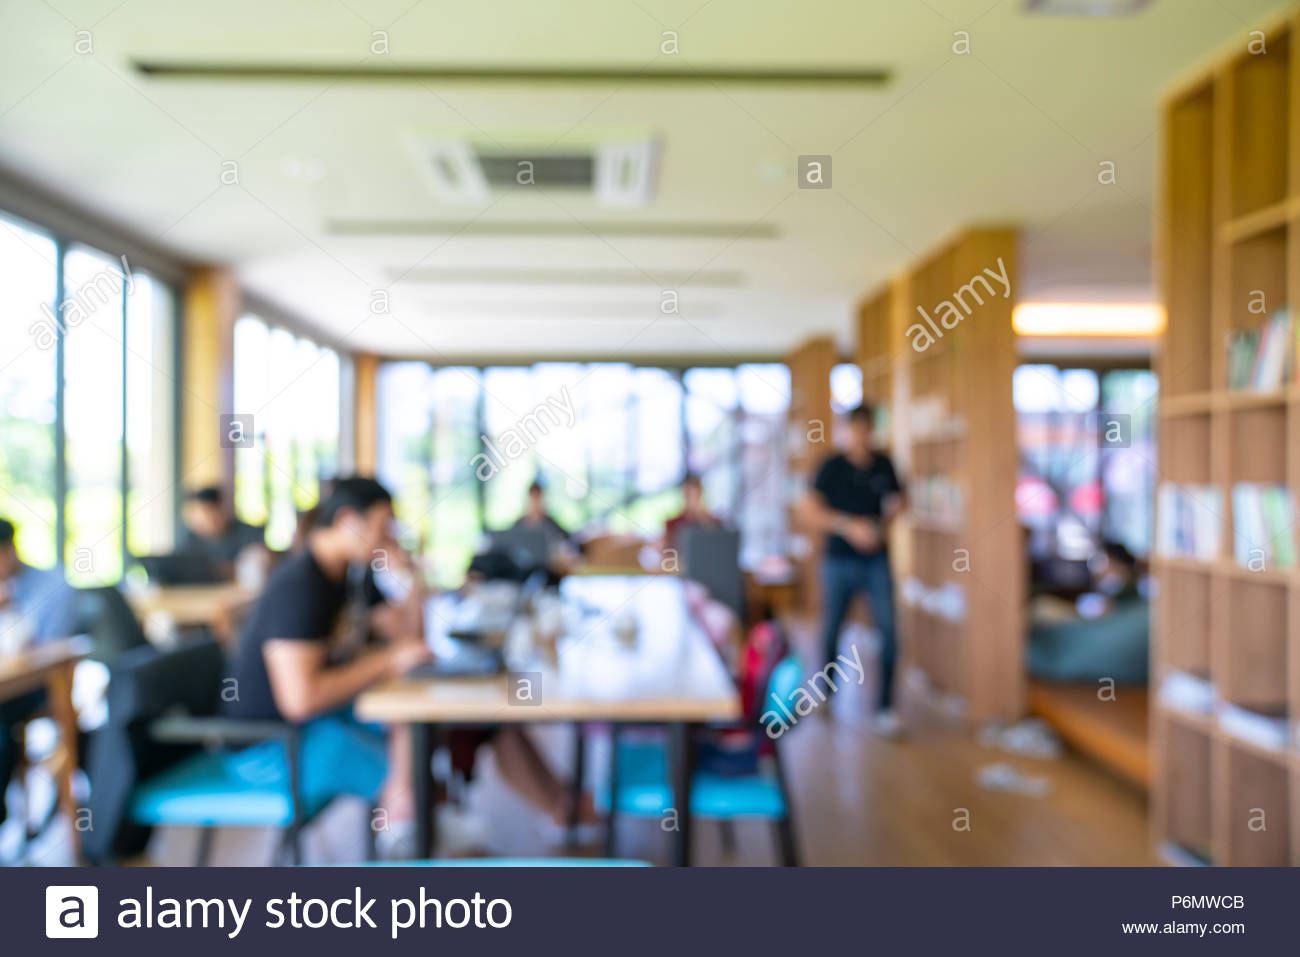 Blurred office interior space background - Stock Image